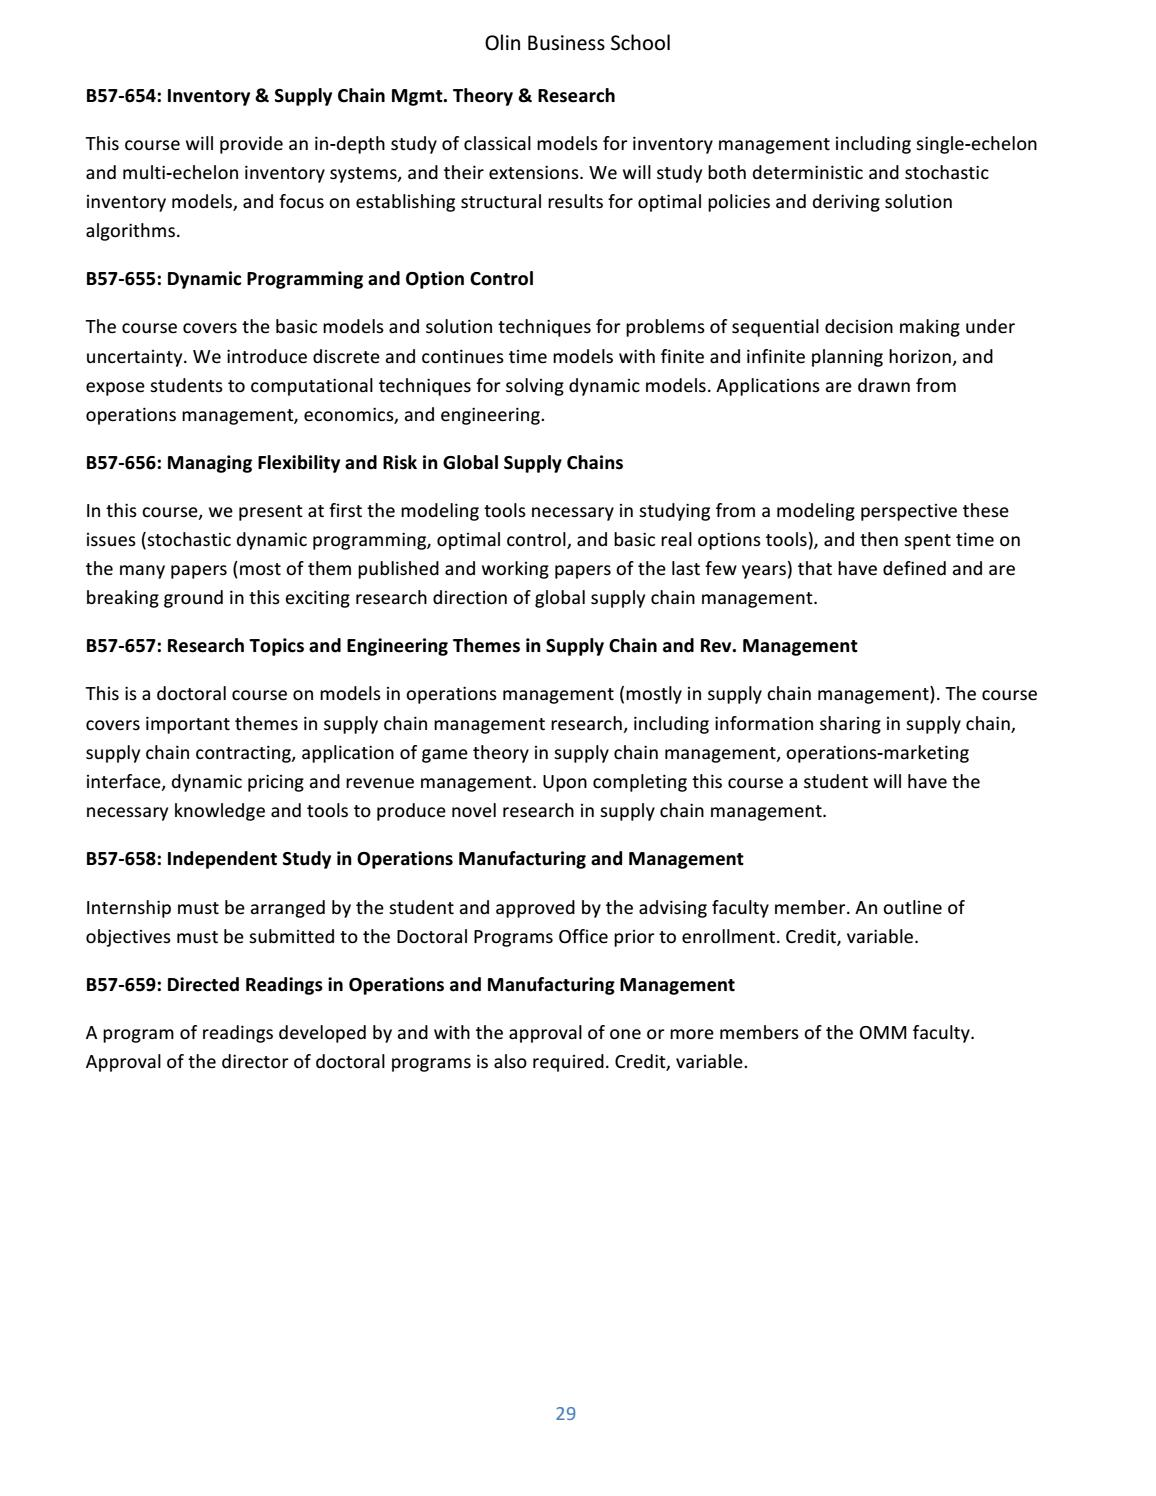 Olin Business School PhD Program Bulletin by Olin Business